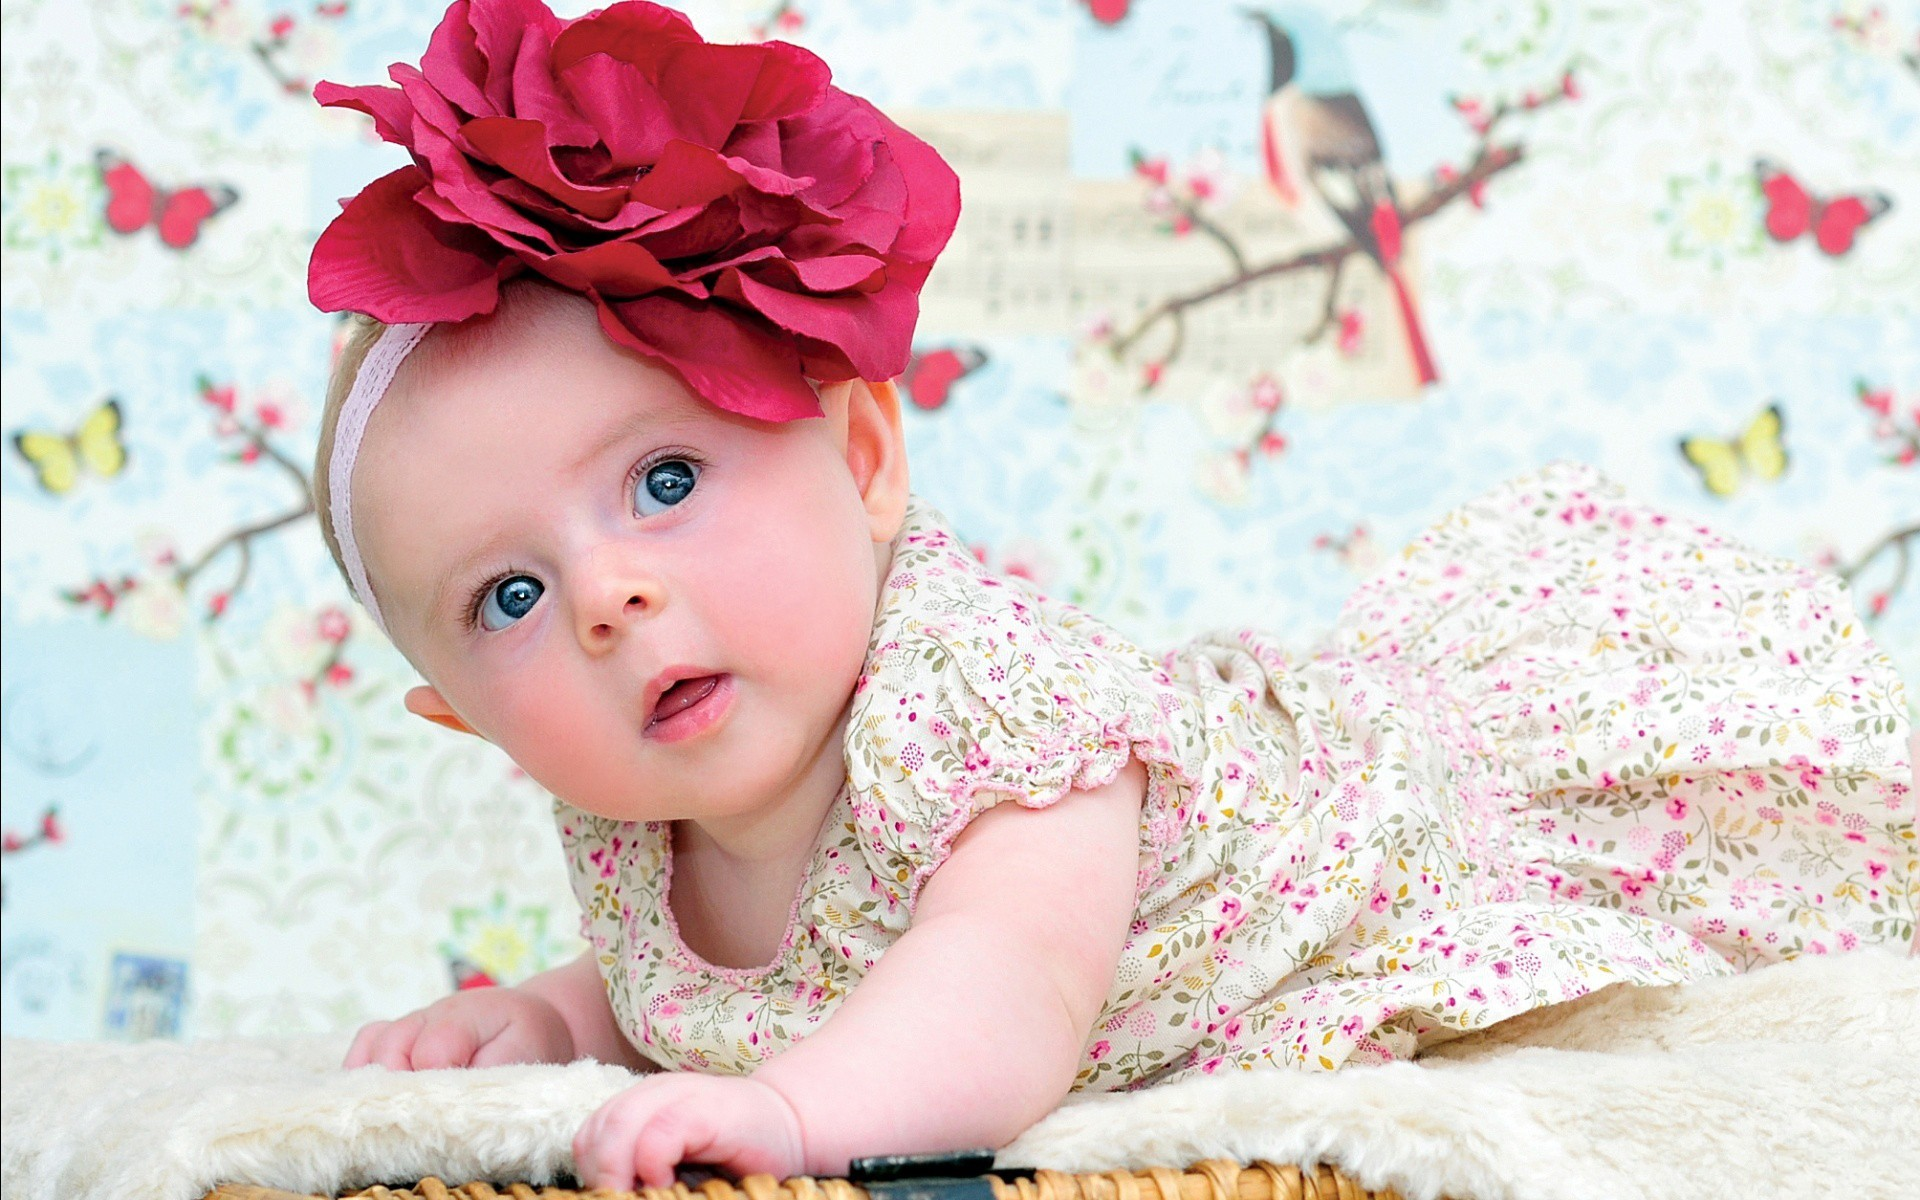 1920x1200 Cute Babies Wallpapers Free Download Funny Family Wallpaper .